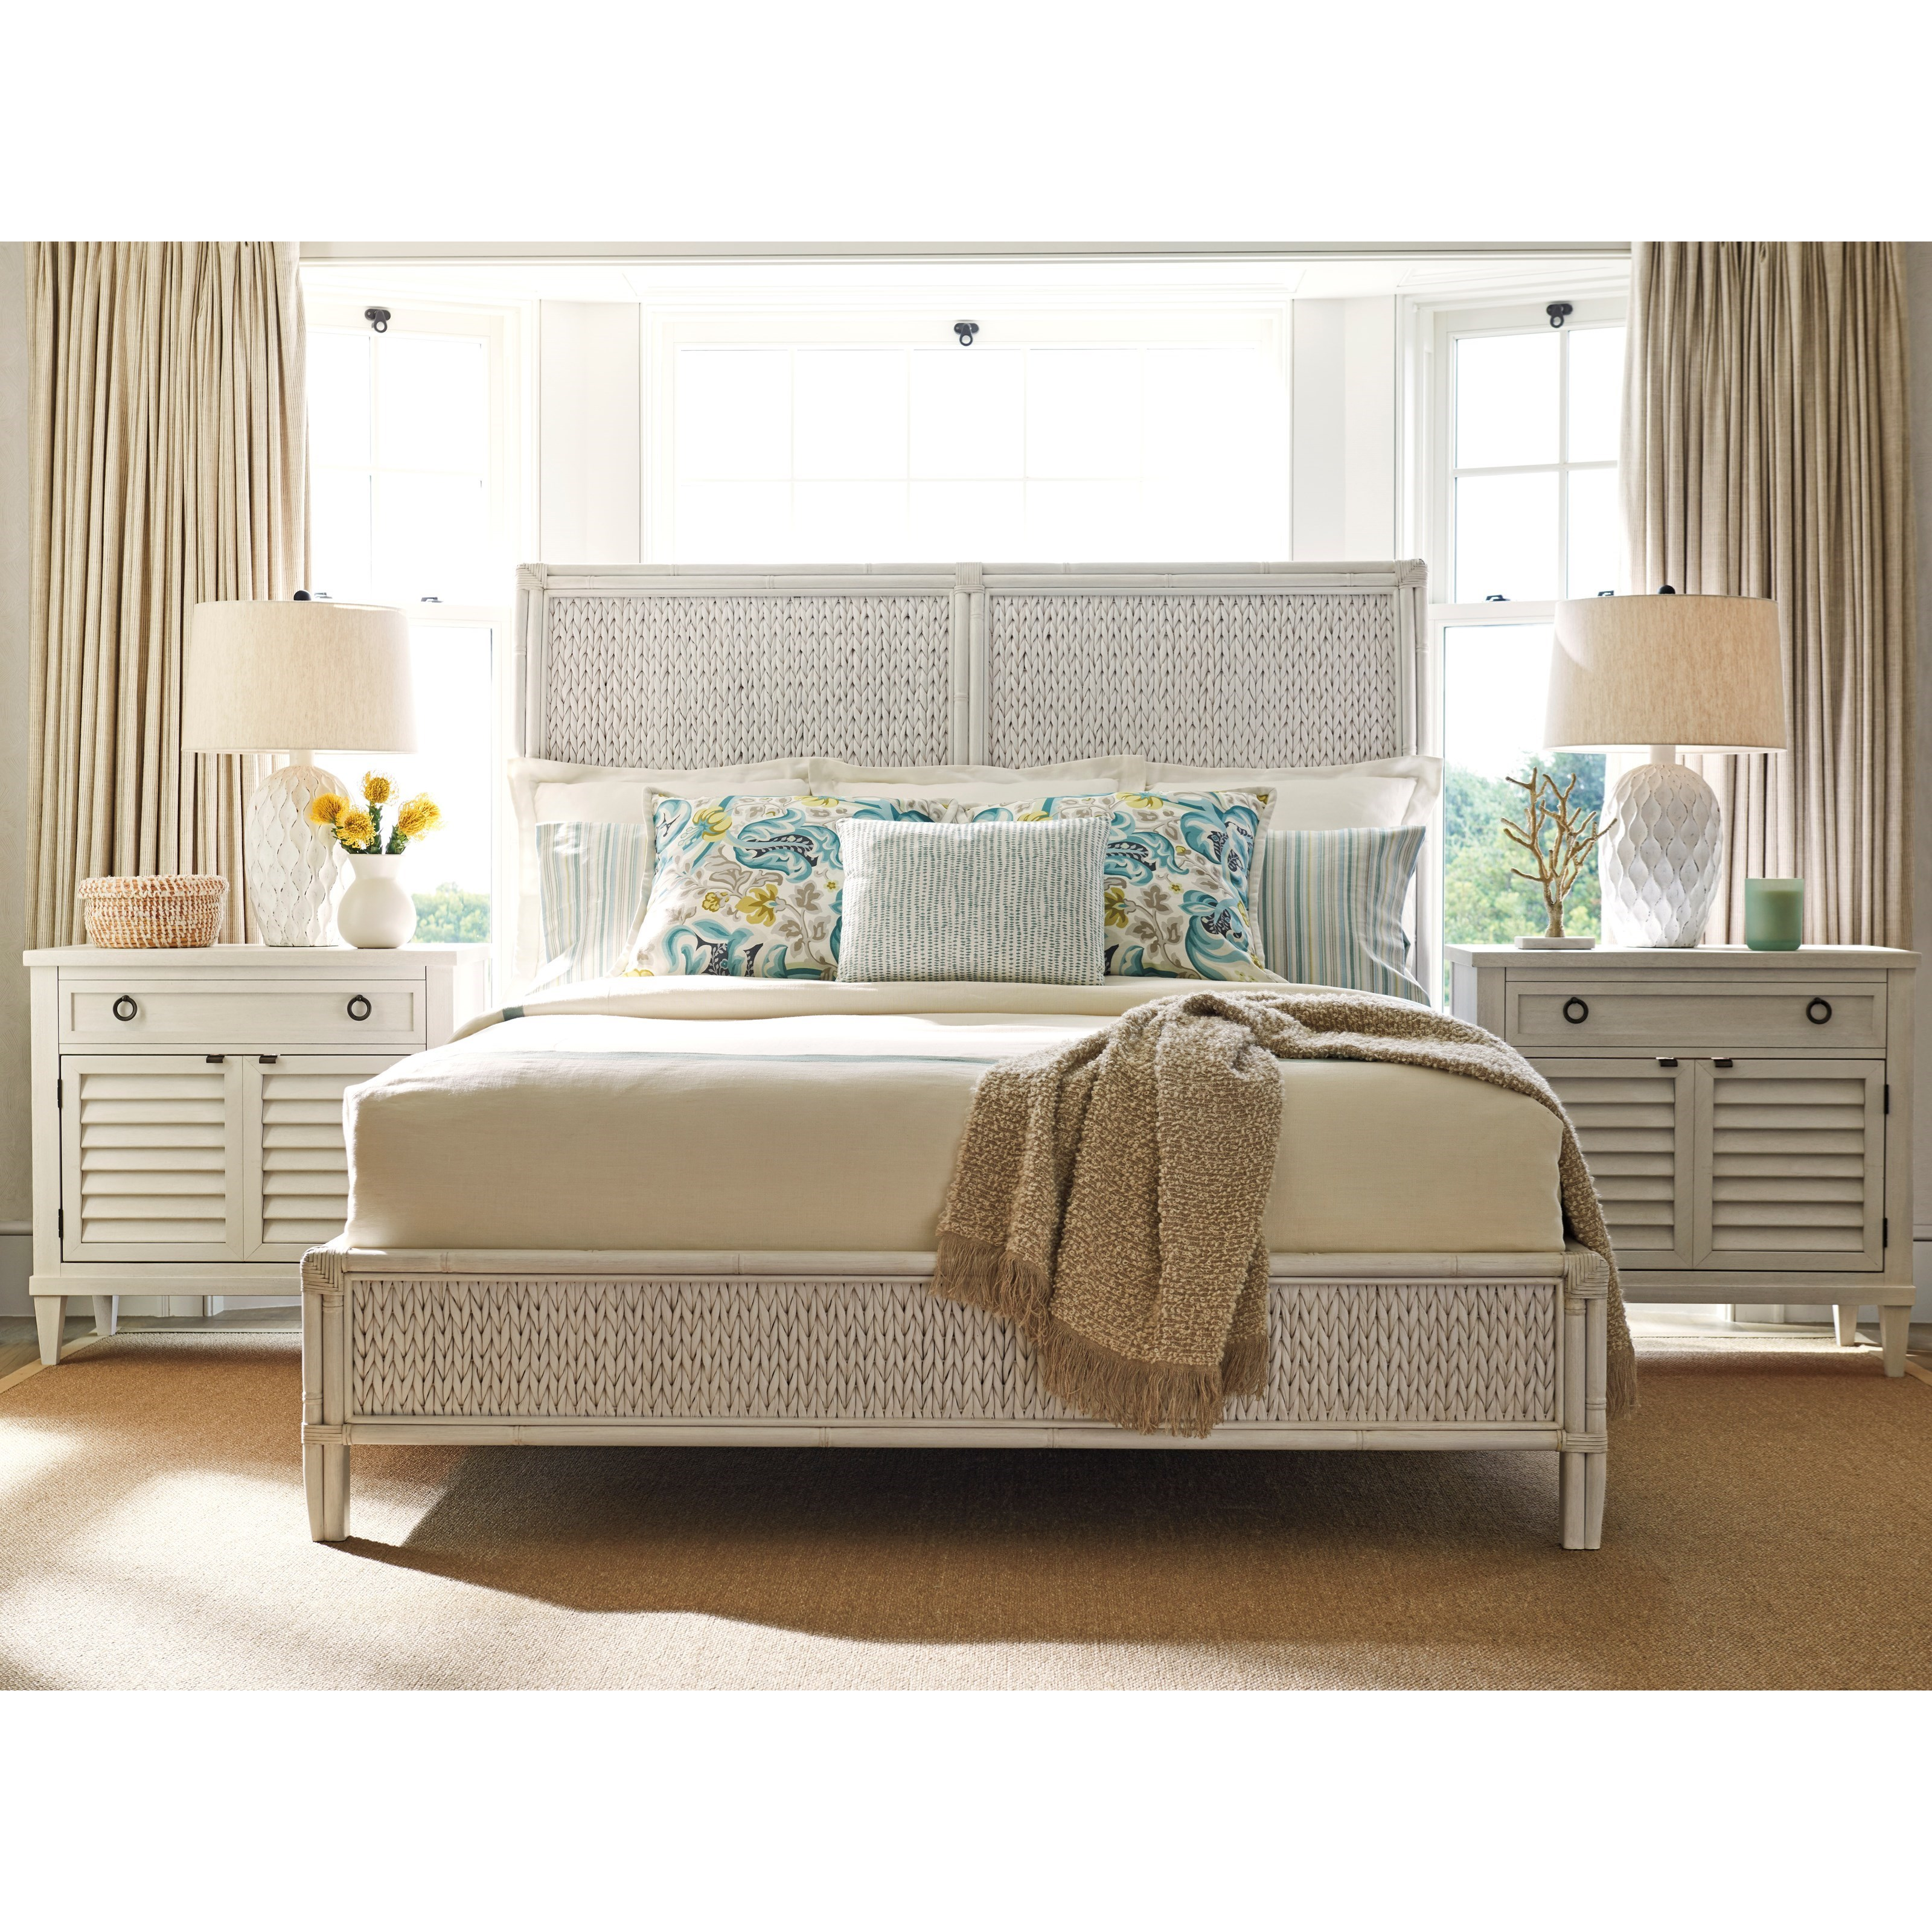 Ocean Breeze Queen Bedroom Group by Tommy Bahama Home at Stuckey Furniture